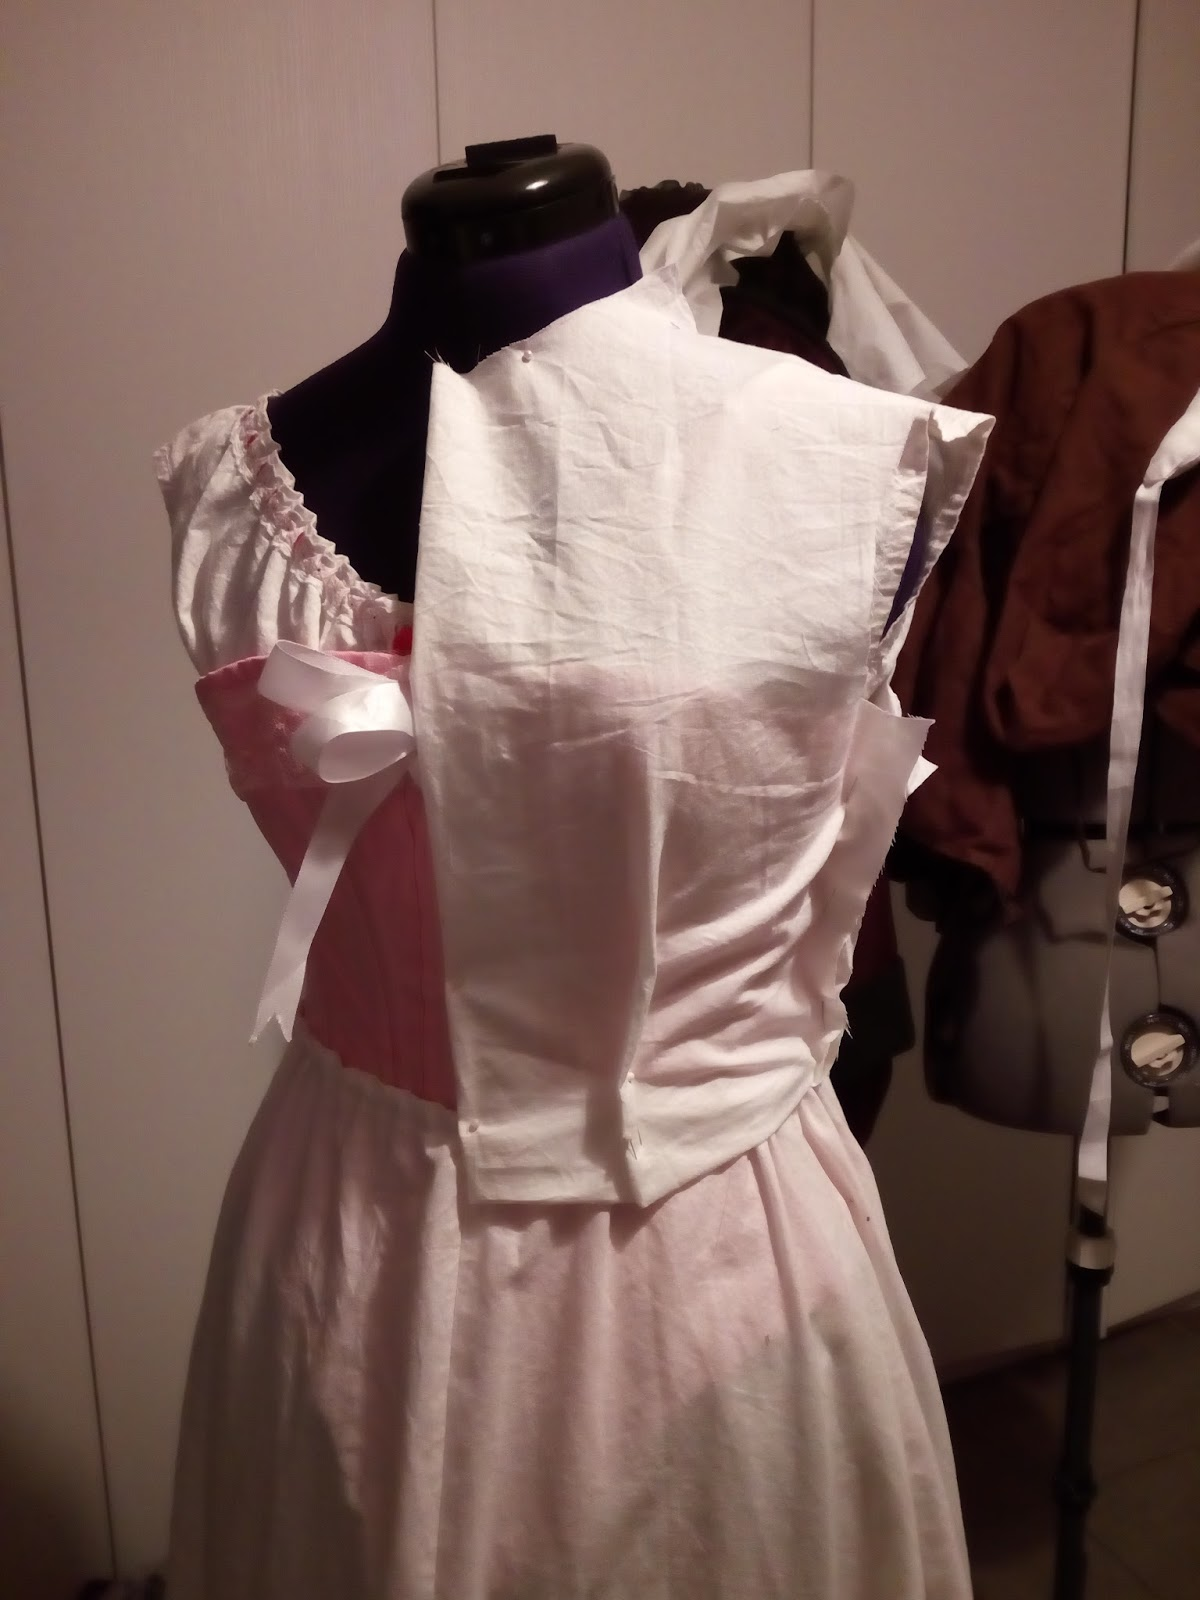 Making a black 1890s outfit, part 2